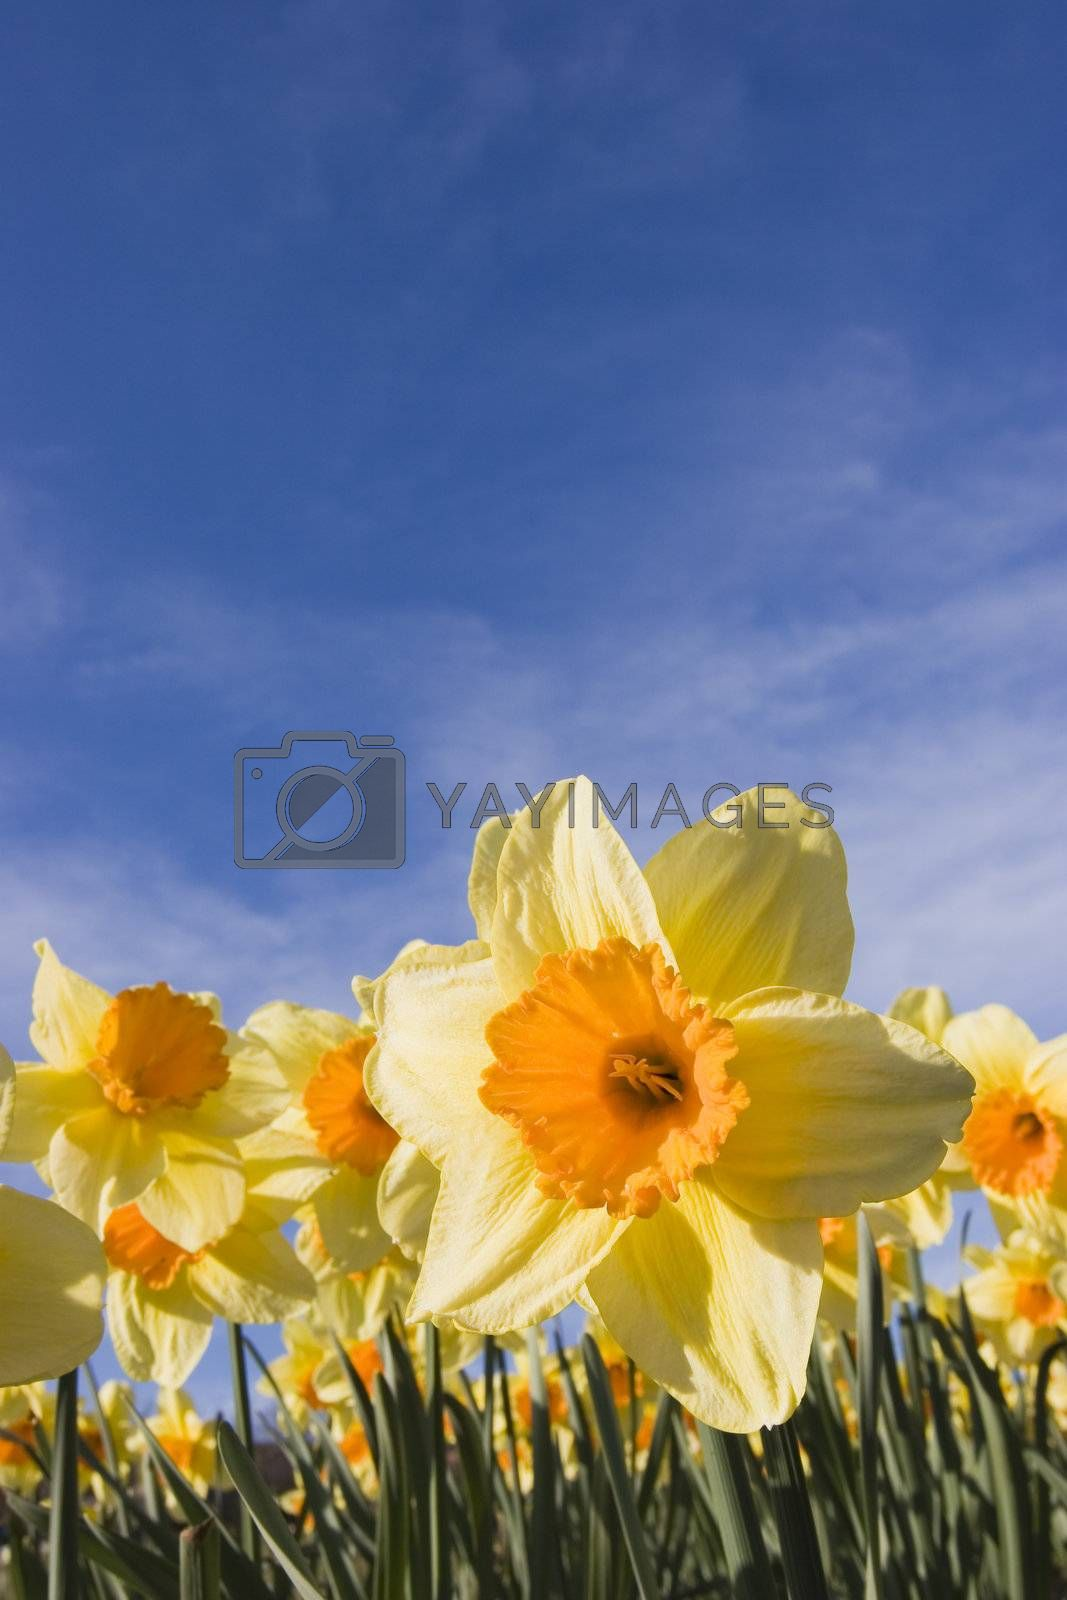 Yellow daffodils in a garden against blue sky